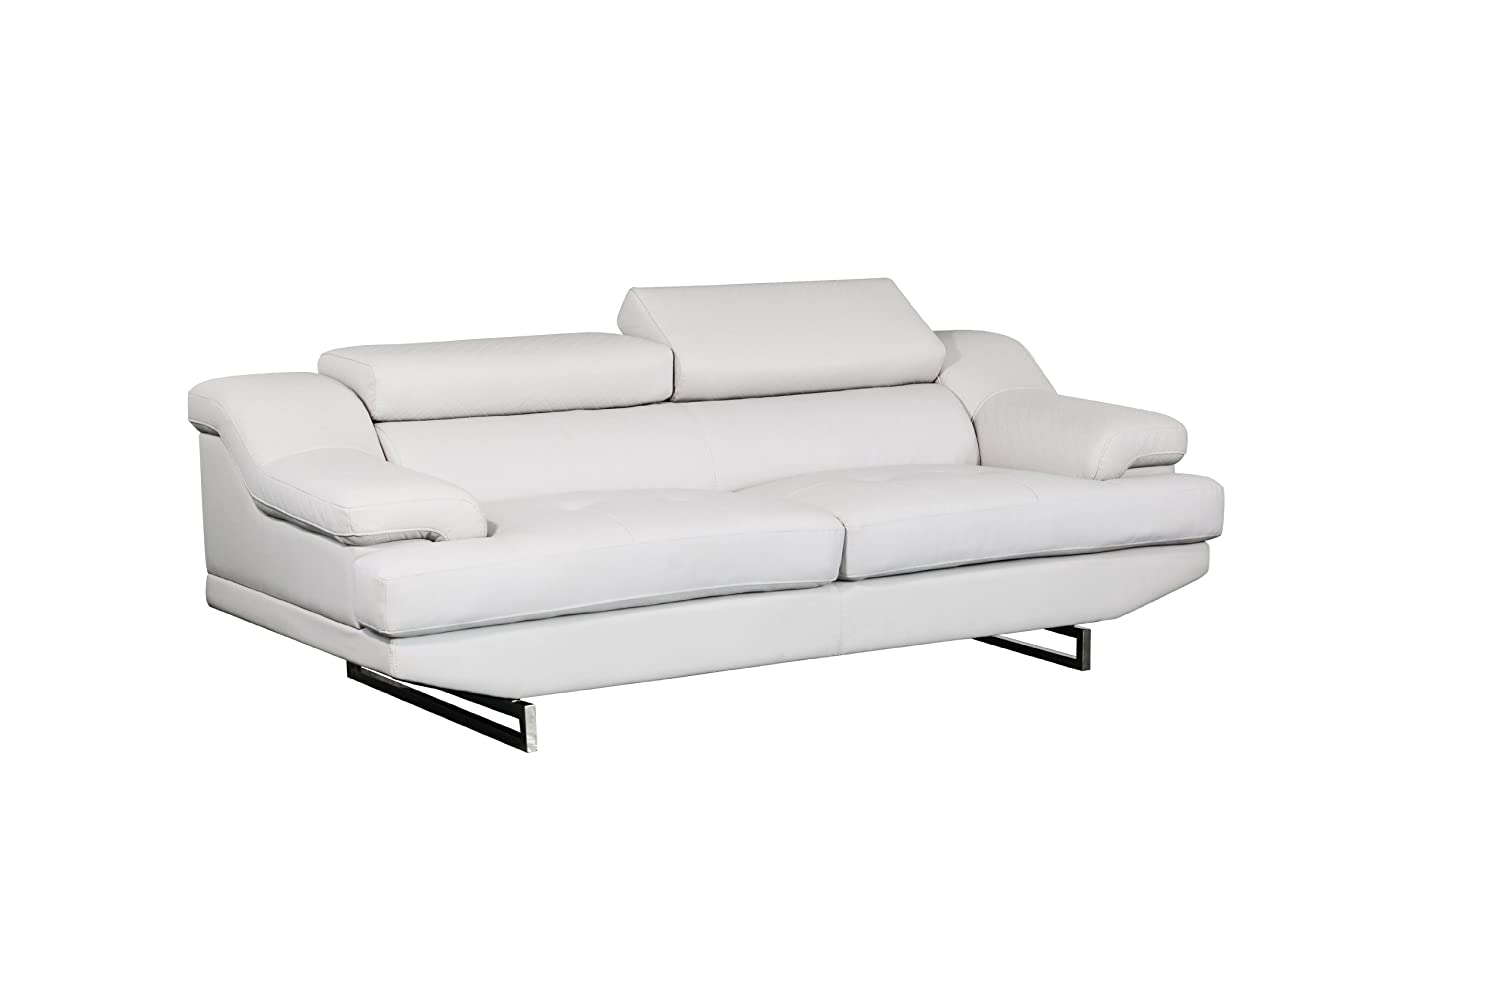 Global Furniture Natalie Sofa - Light Grey and Wagner